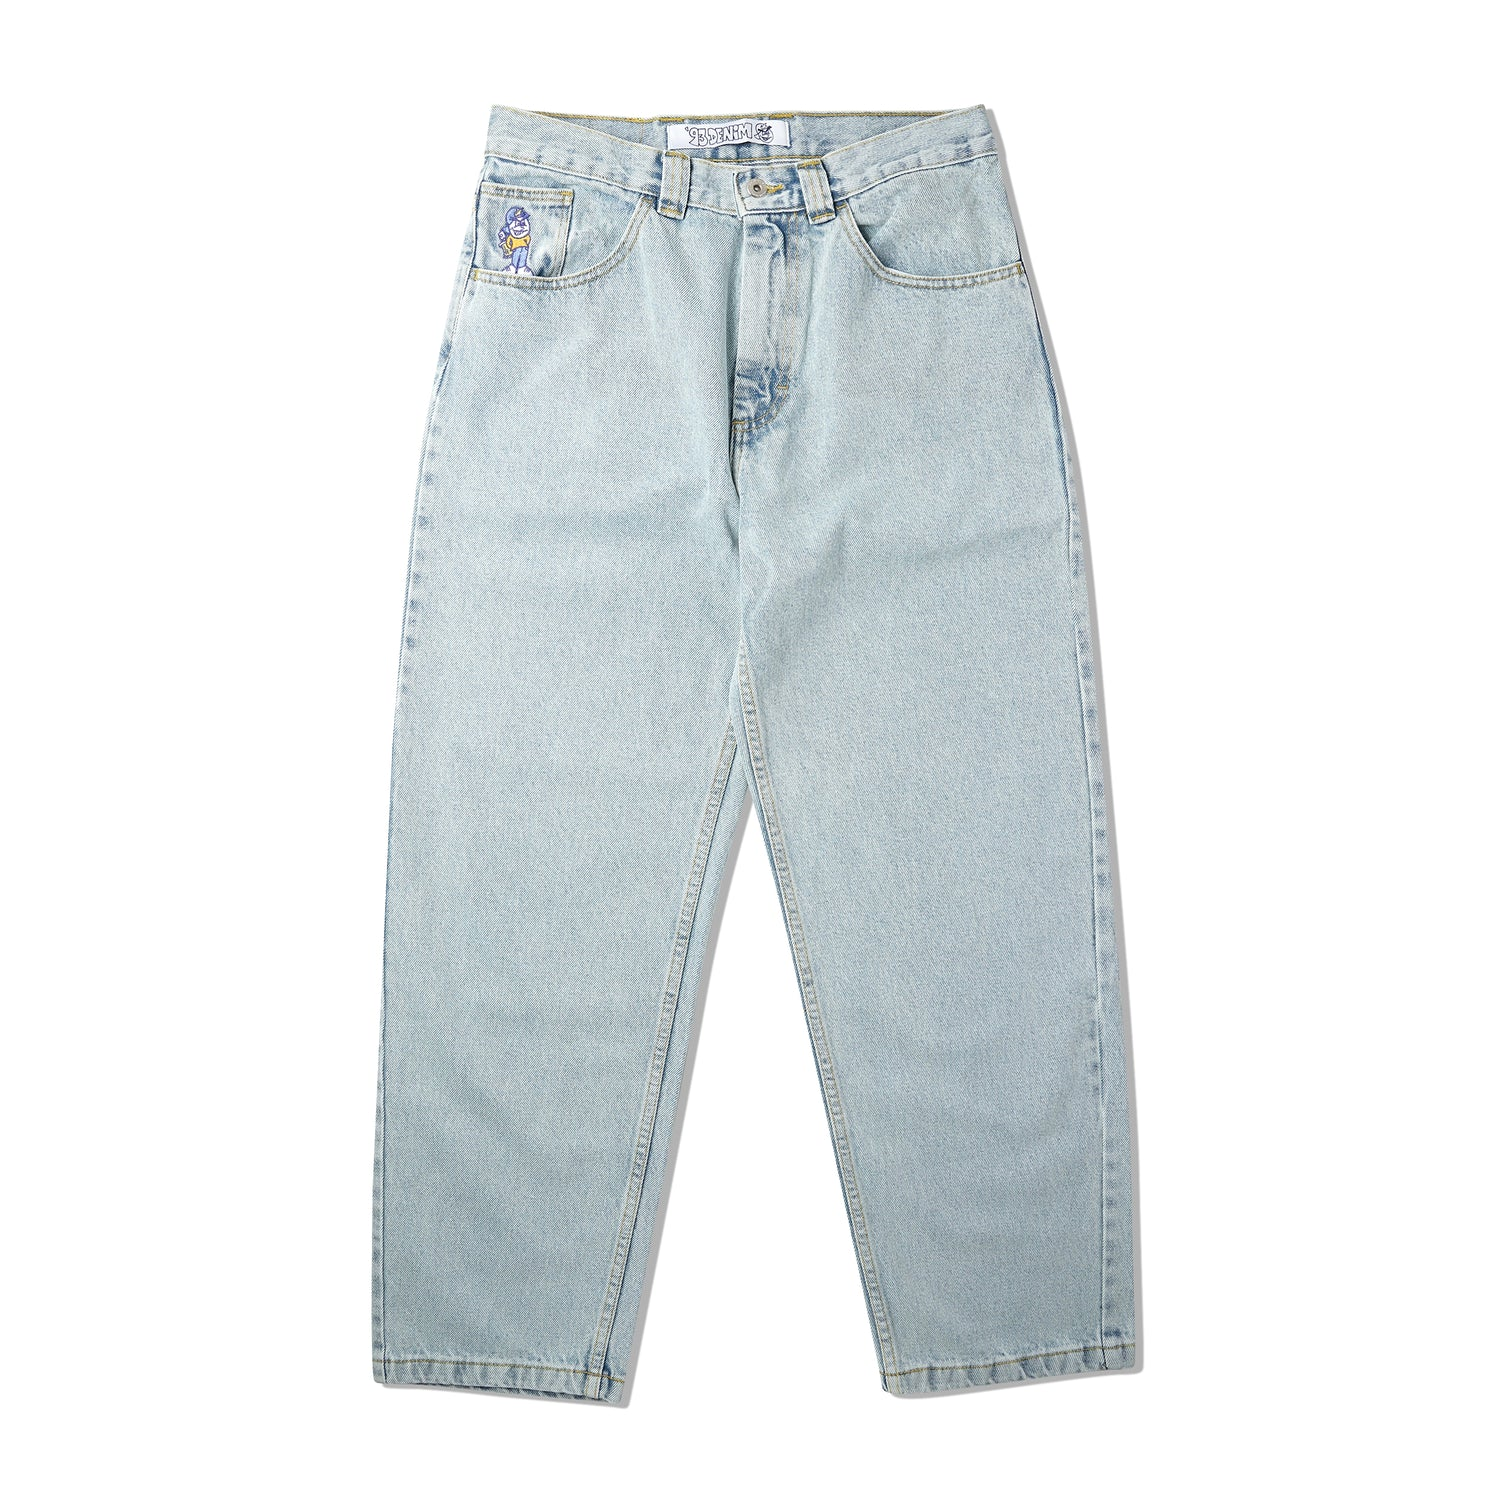 '93 Denim Pants, Light Blue